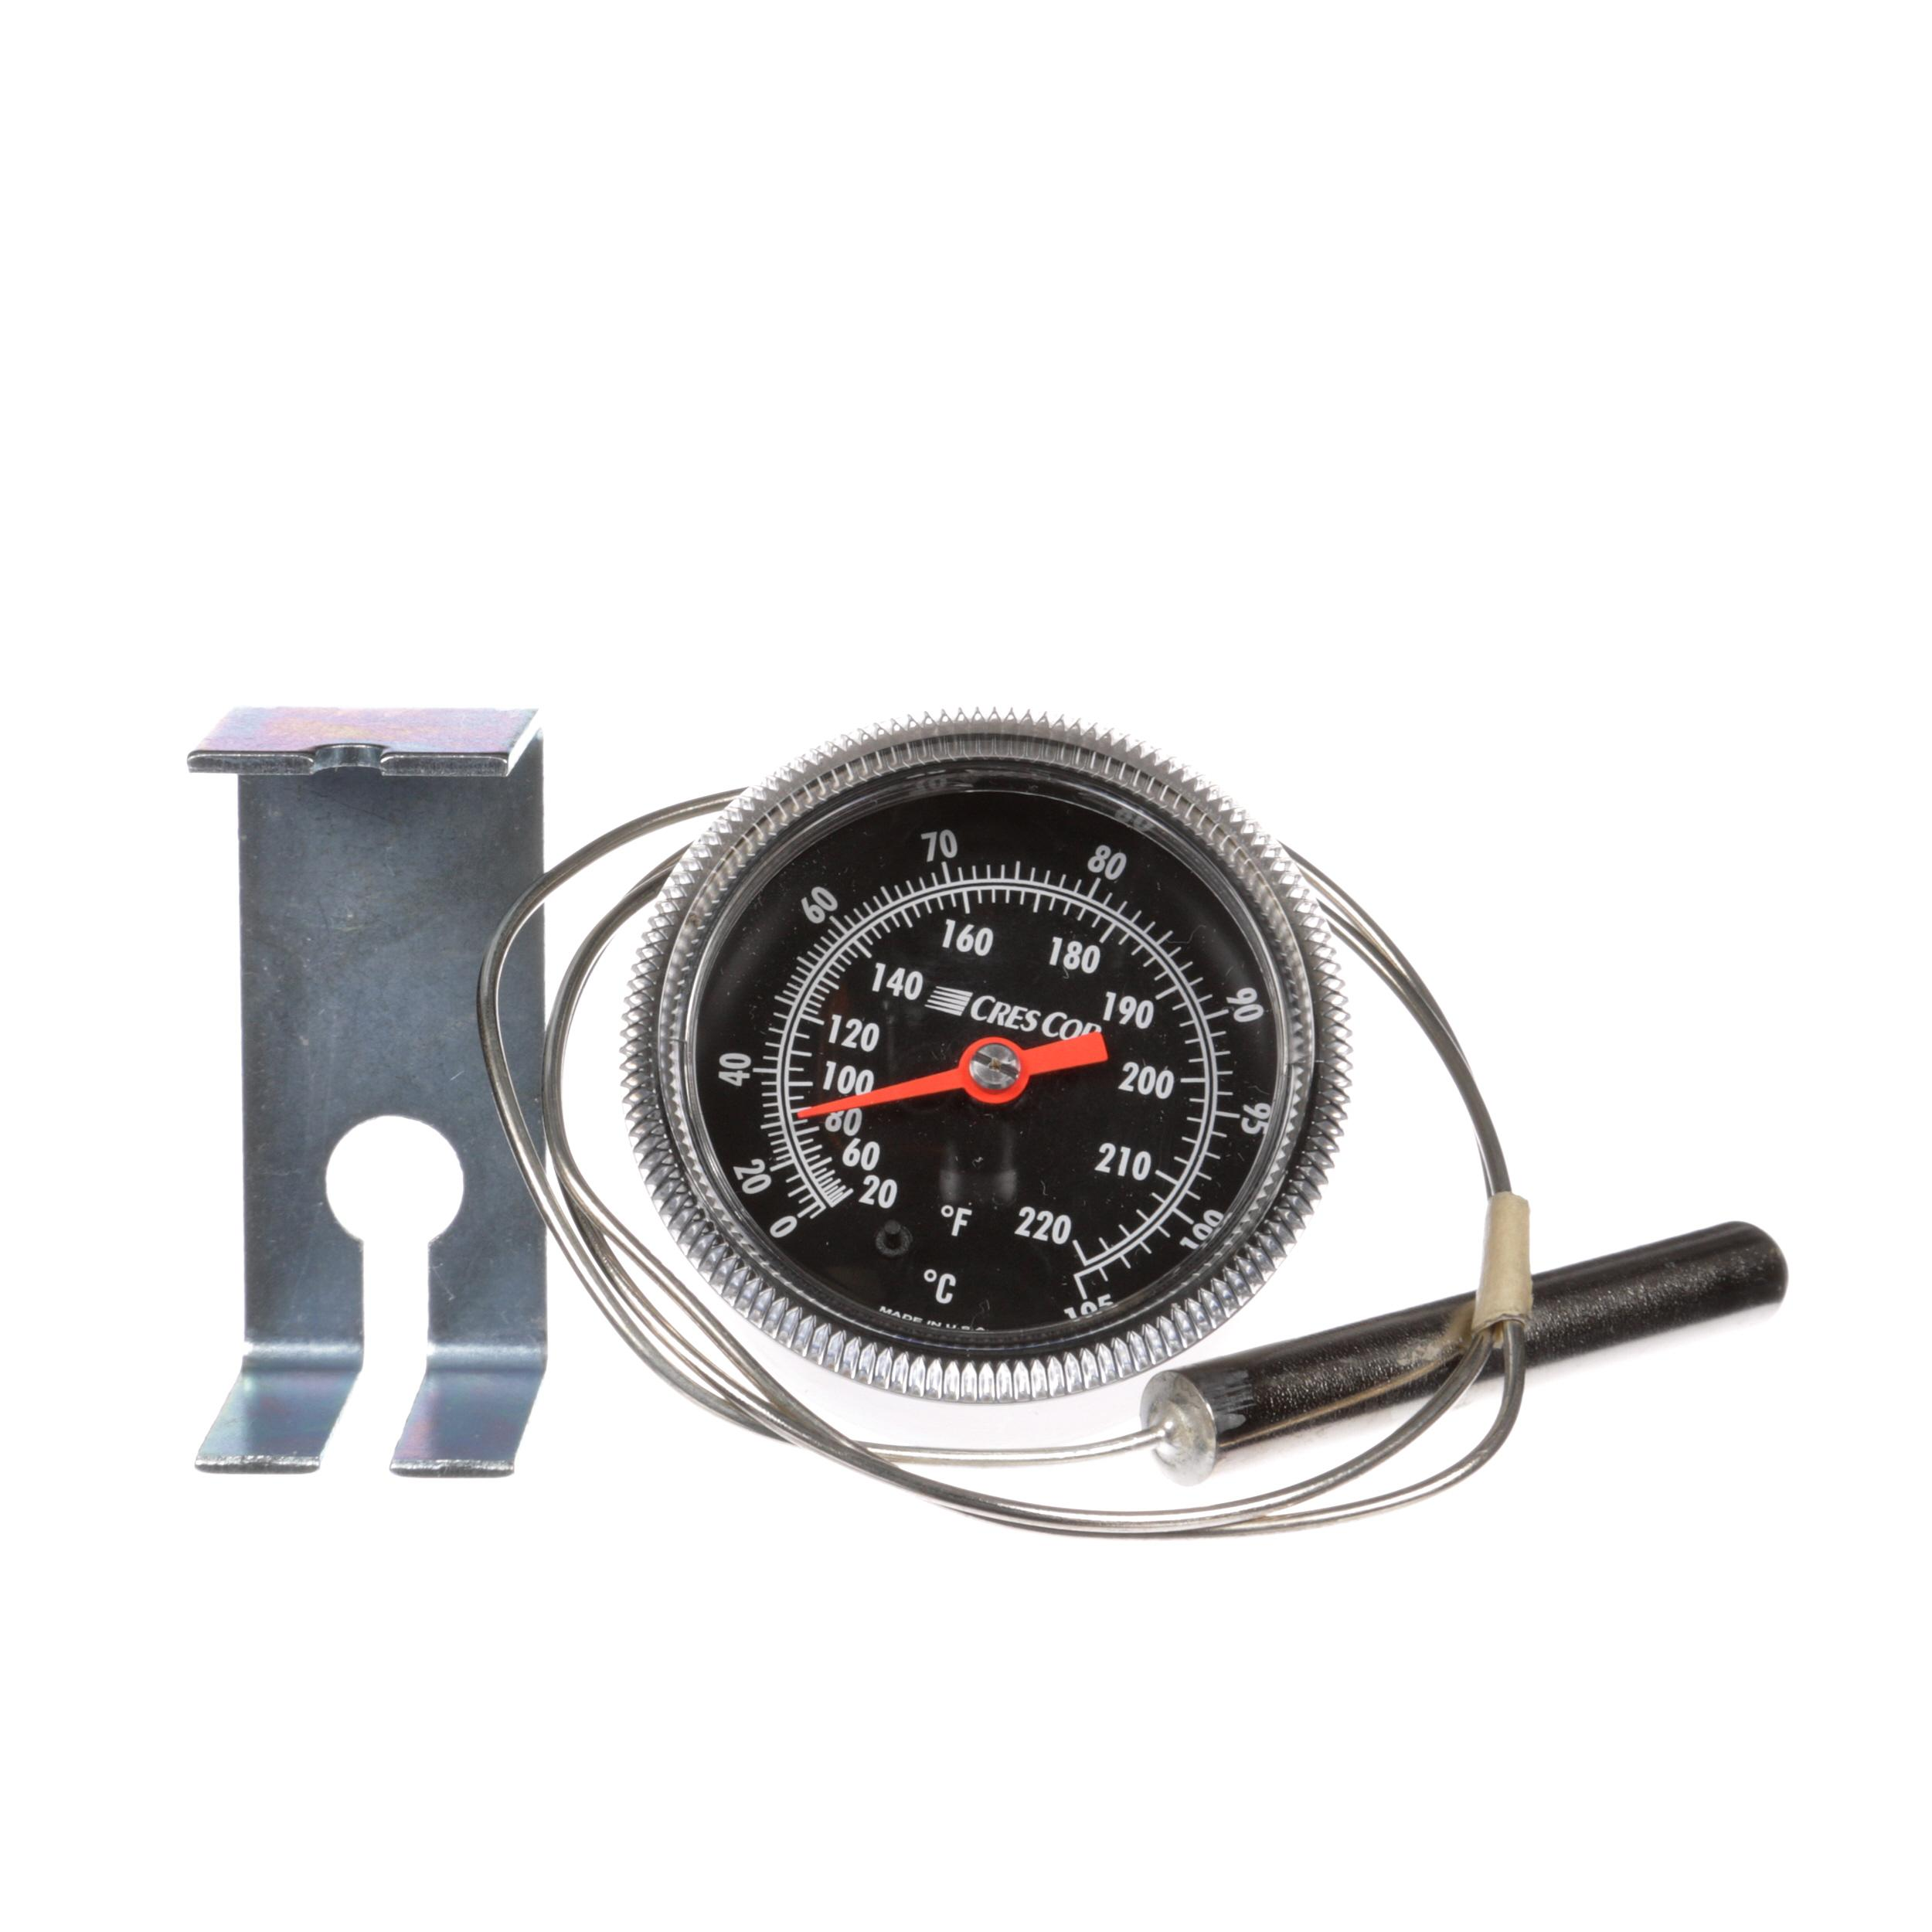 CRES COR THERMOMETER